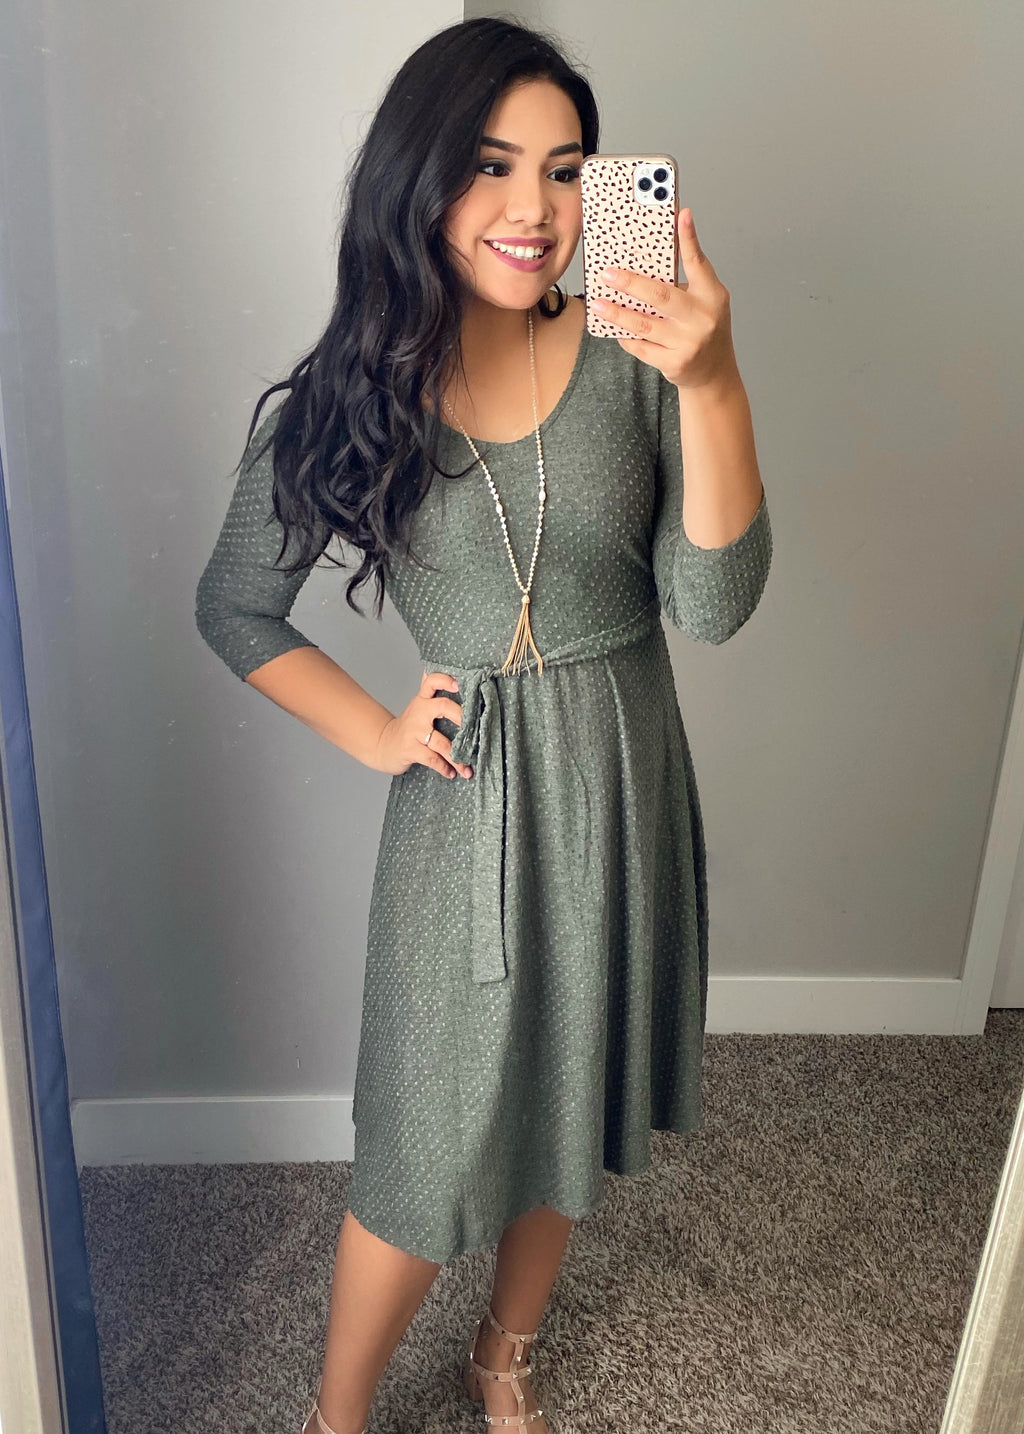 Big Dreams Dress - Olive - The Darling Style - Modest Dresses